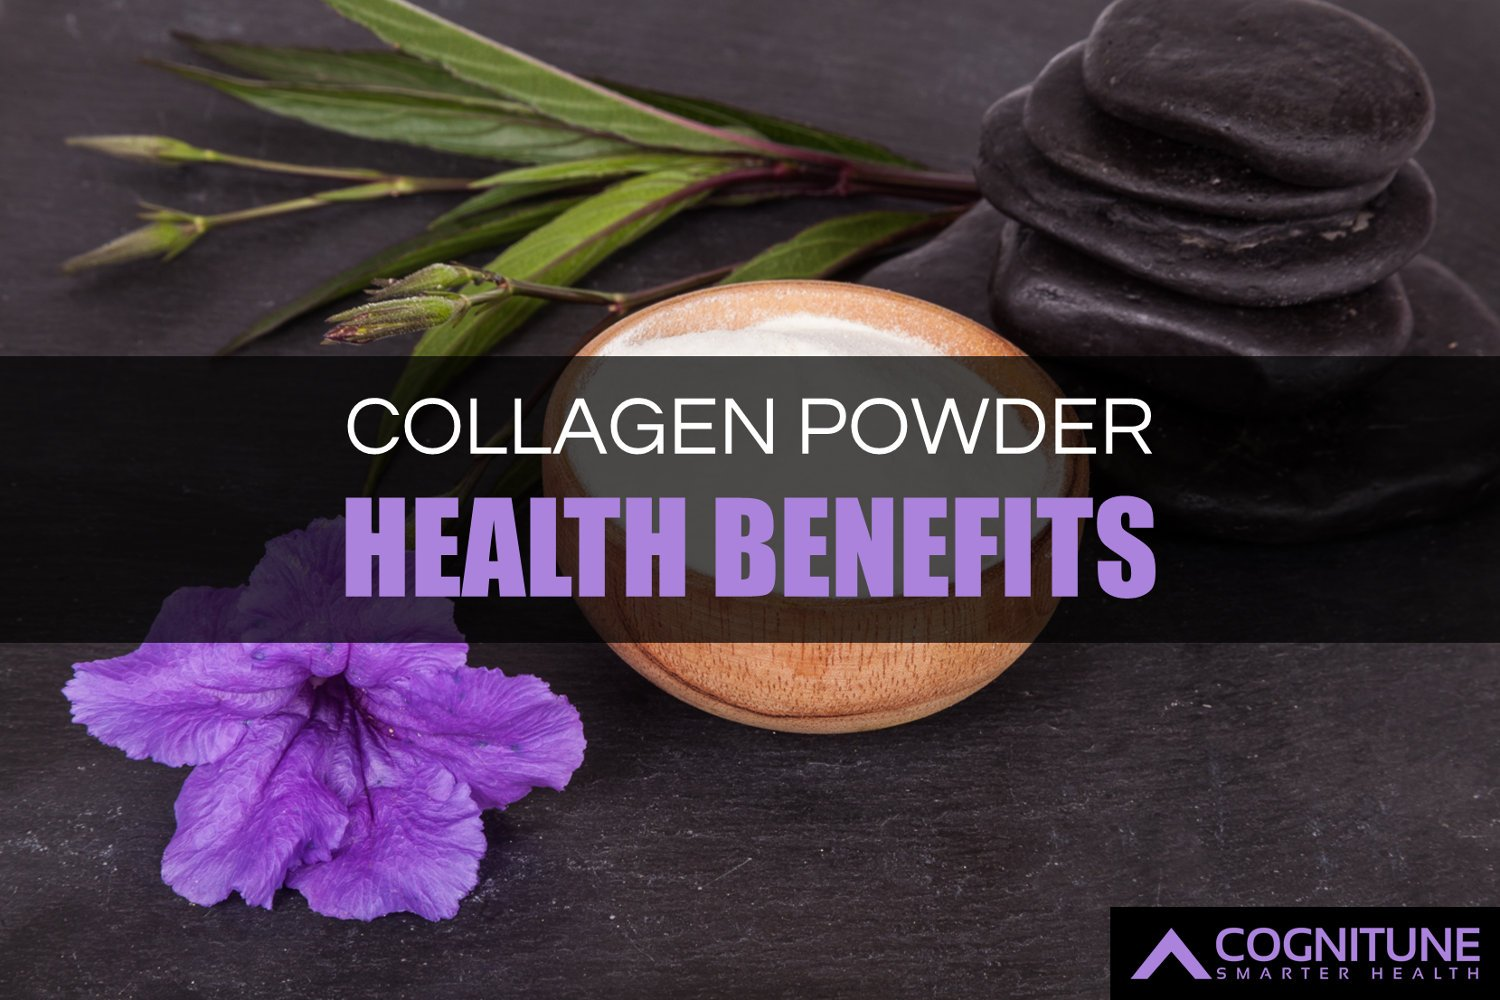 Hydrolyzed Collagen Benefits